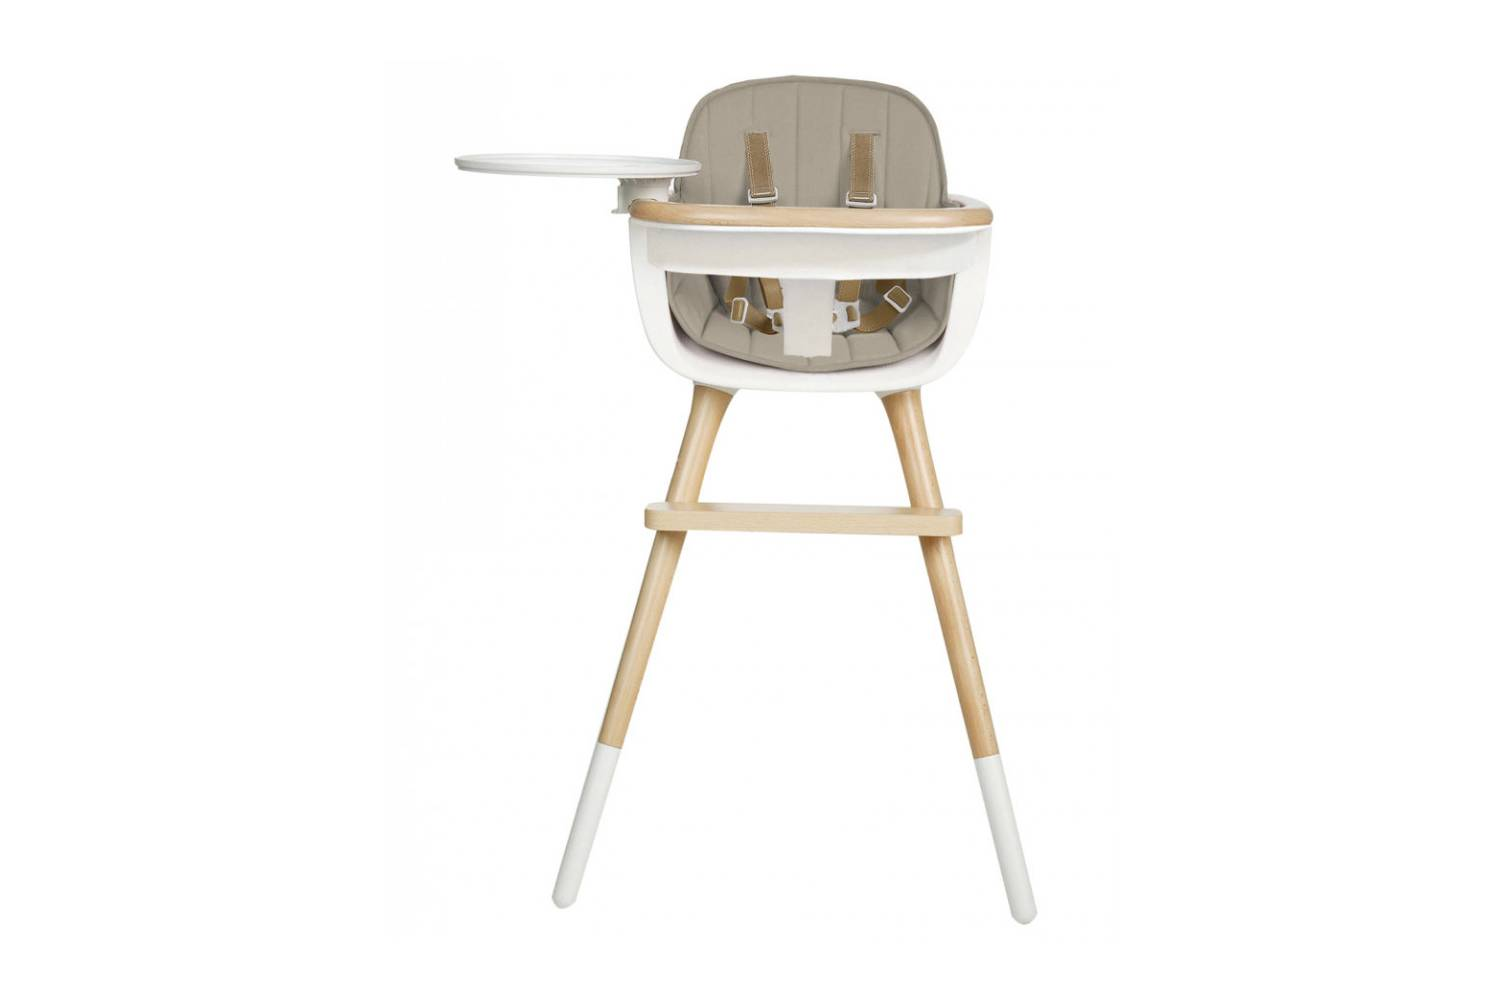 The Ovo Beechwood High Chair, shown in beige but available in six different colors, is $574.98 at Micuna.